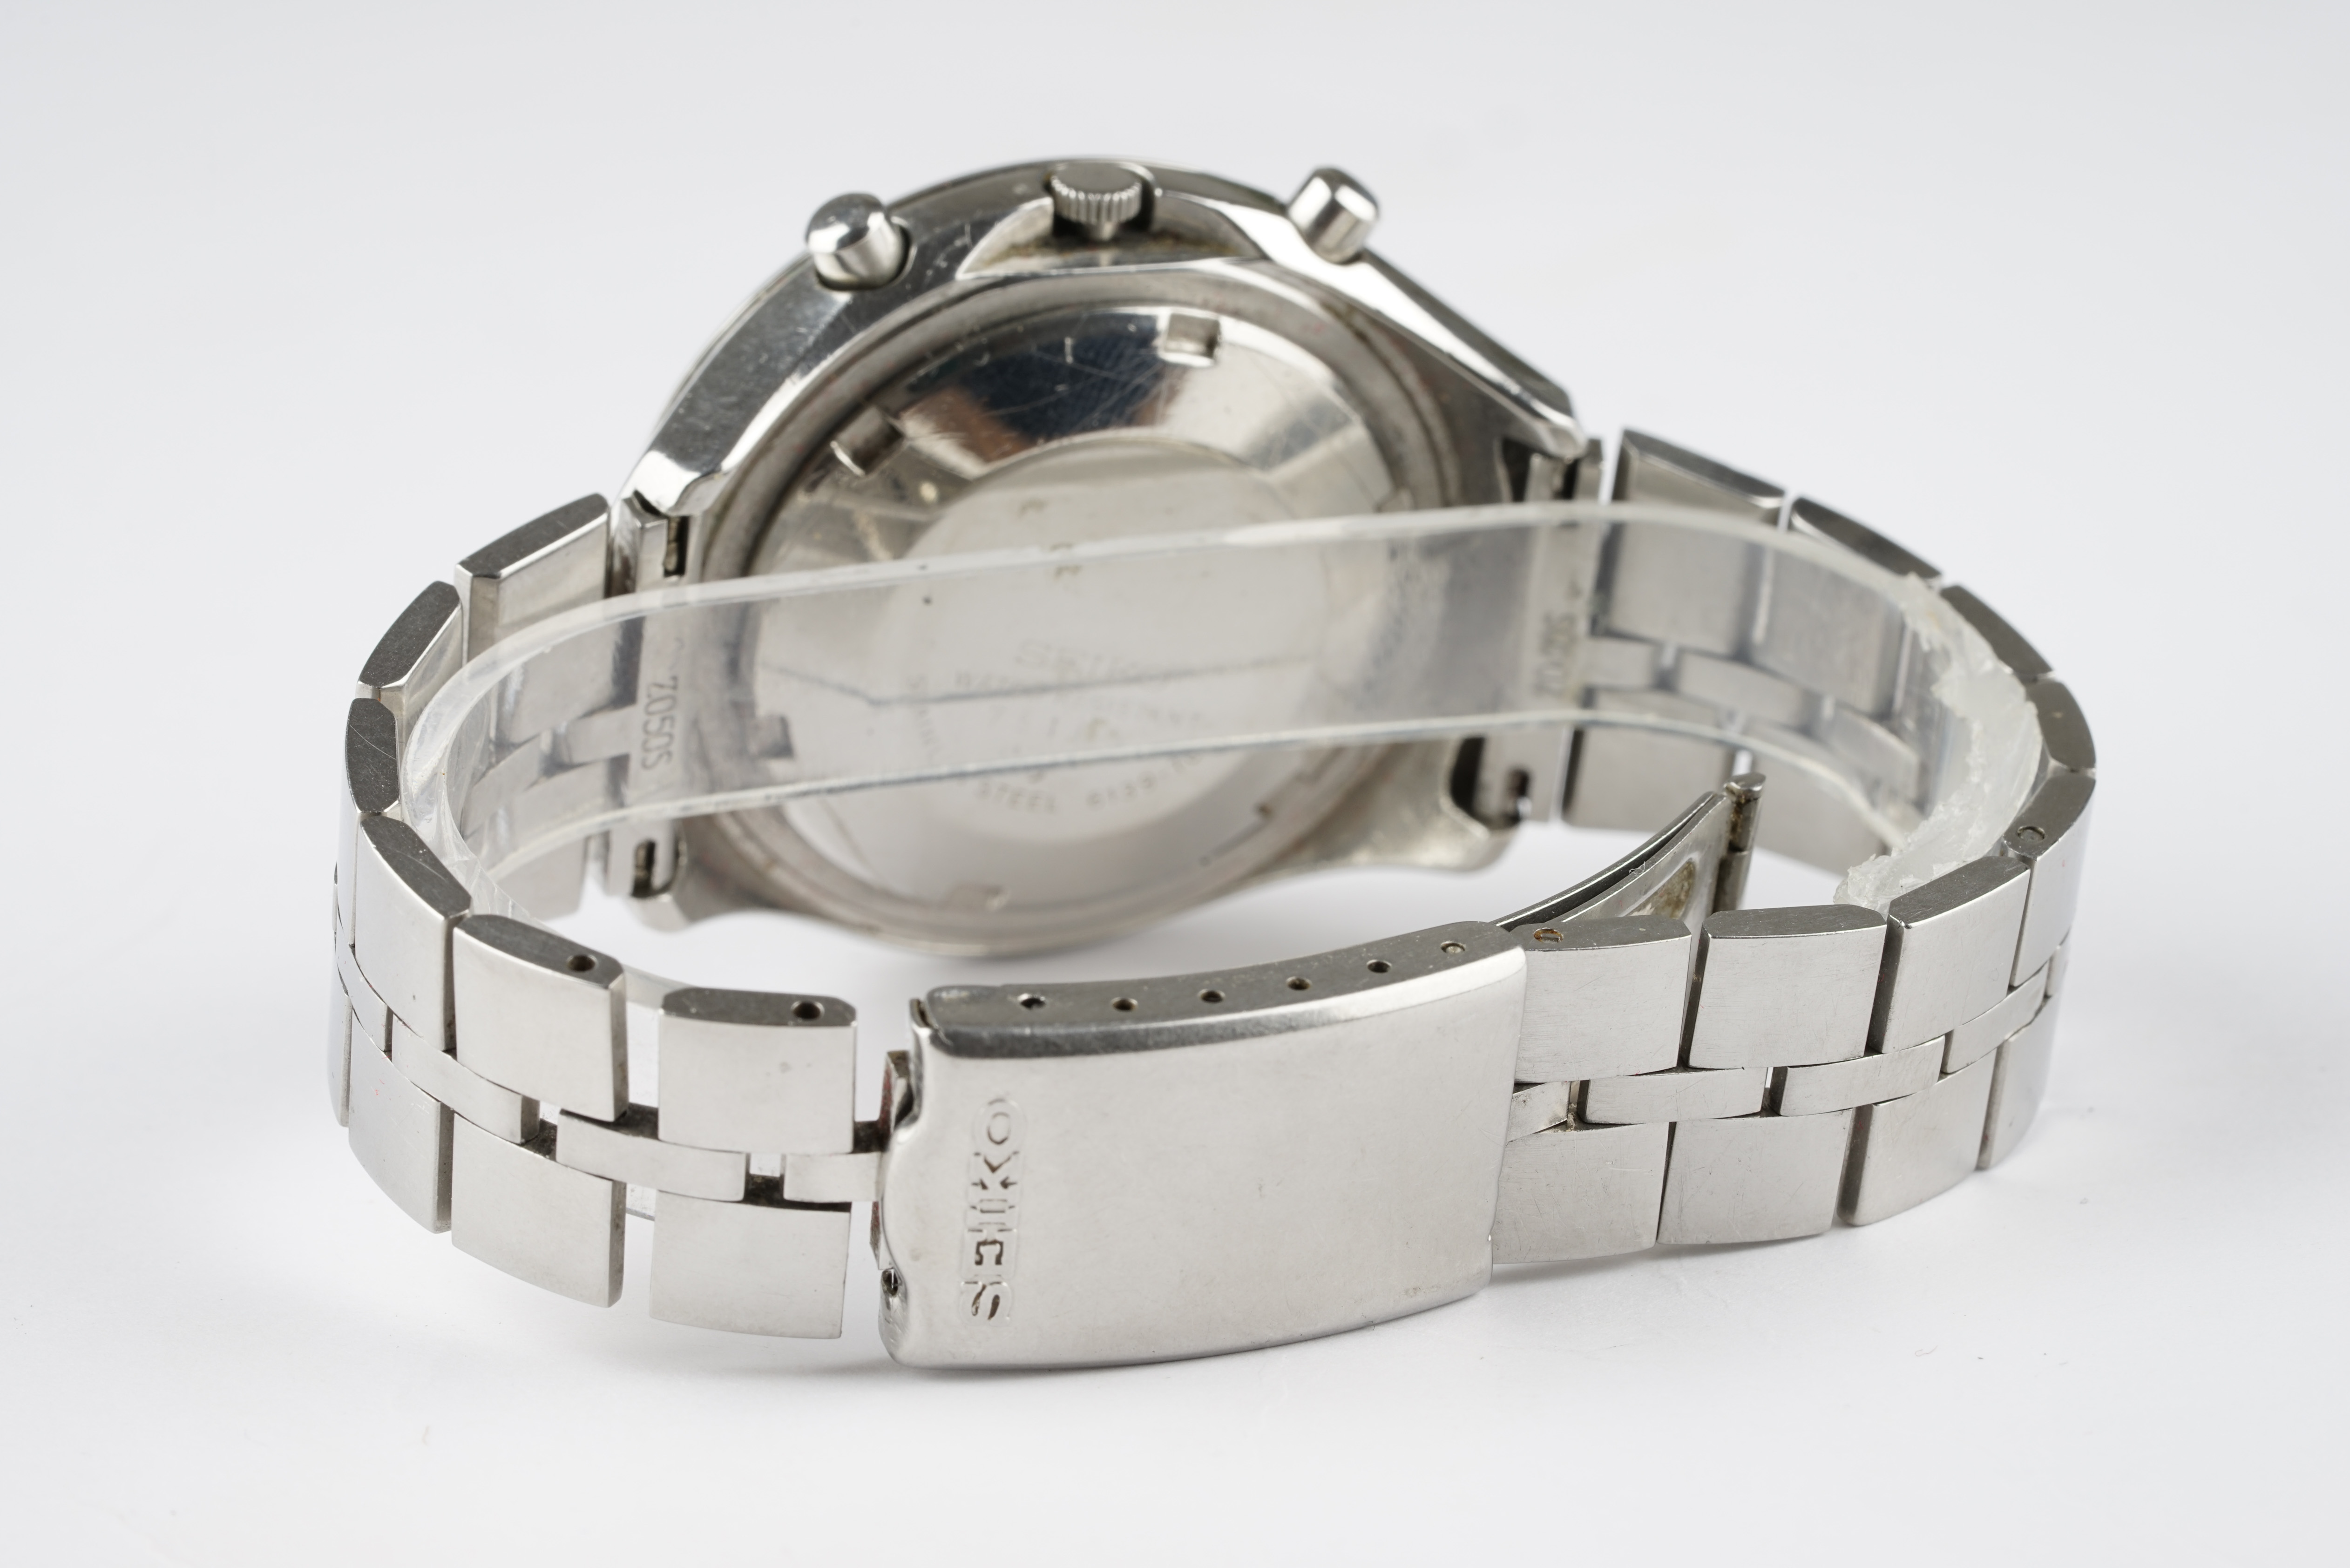 GENTLEMENS SEIKO HELMET CHRONOGRAPH WRISTWATCH, circular black dial with stick and arabic numeral - Image 2 of 2